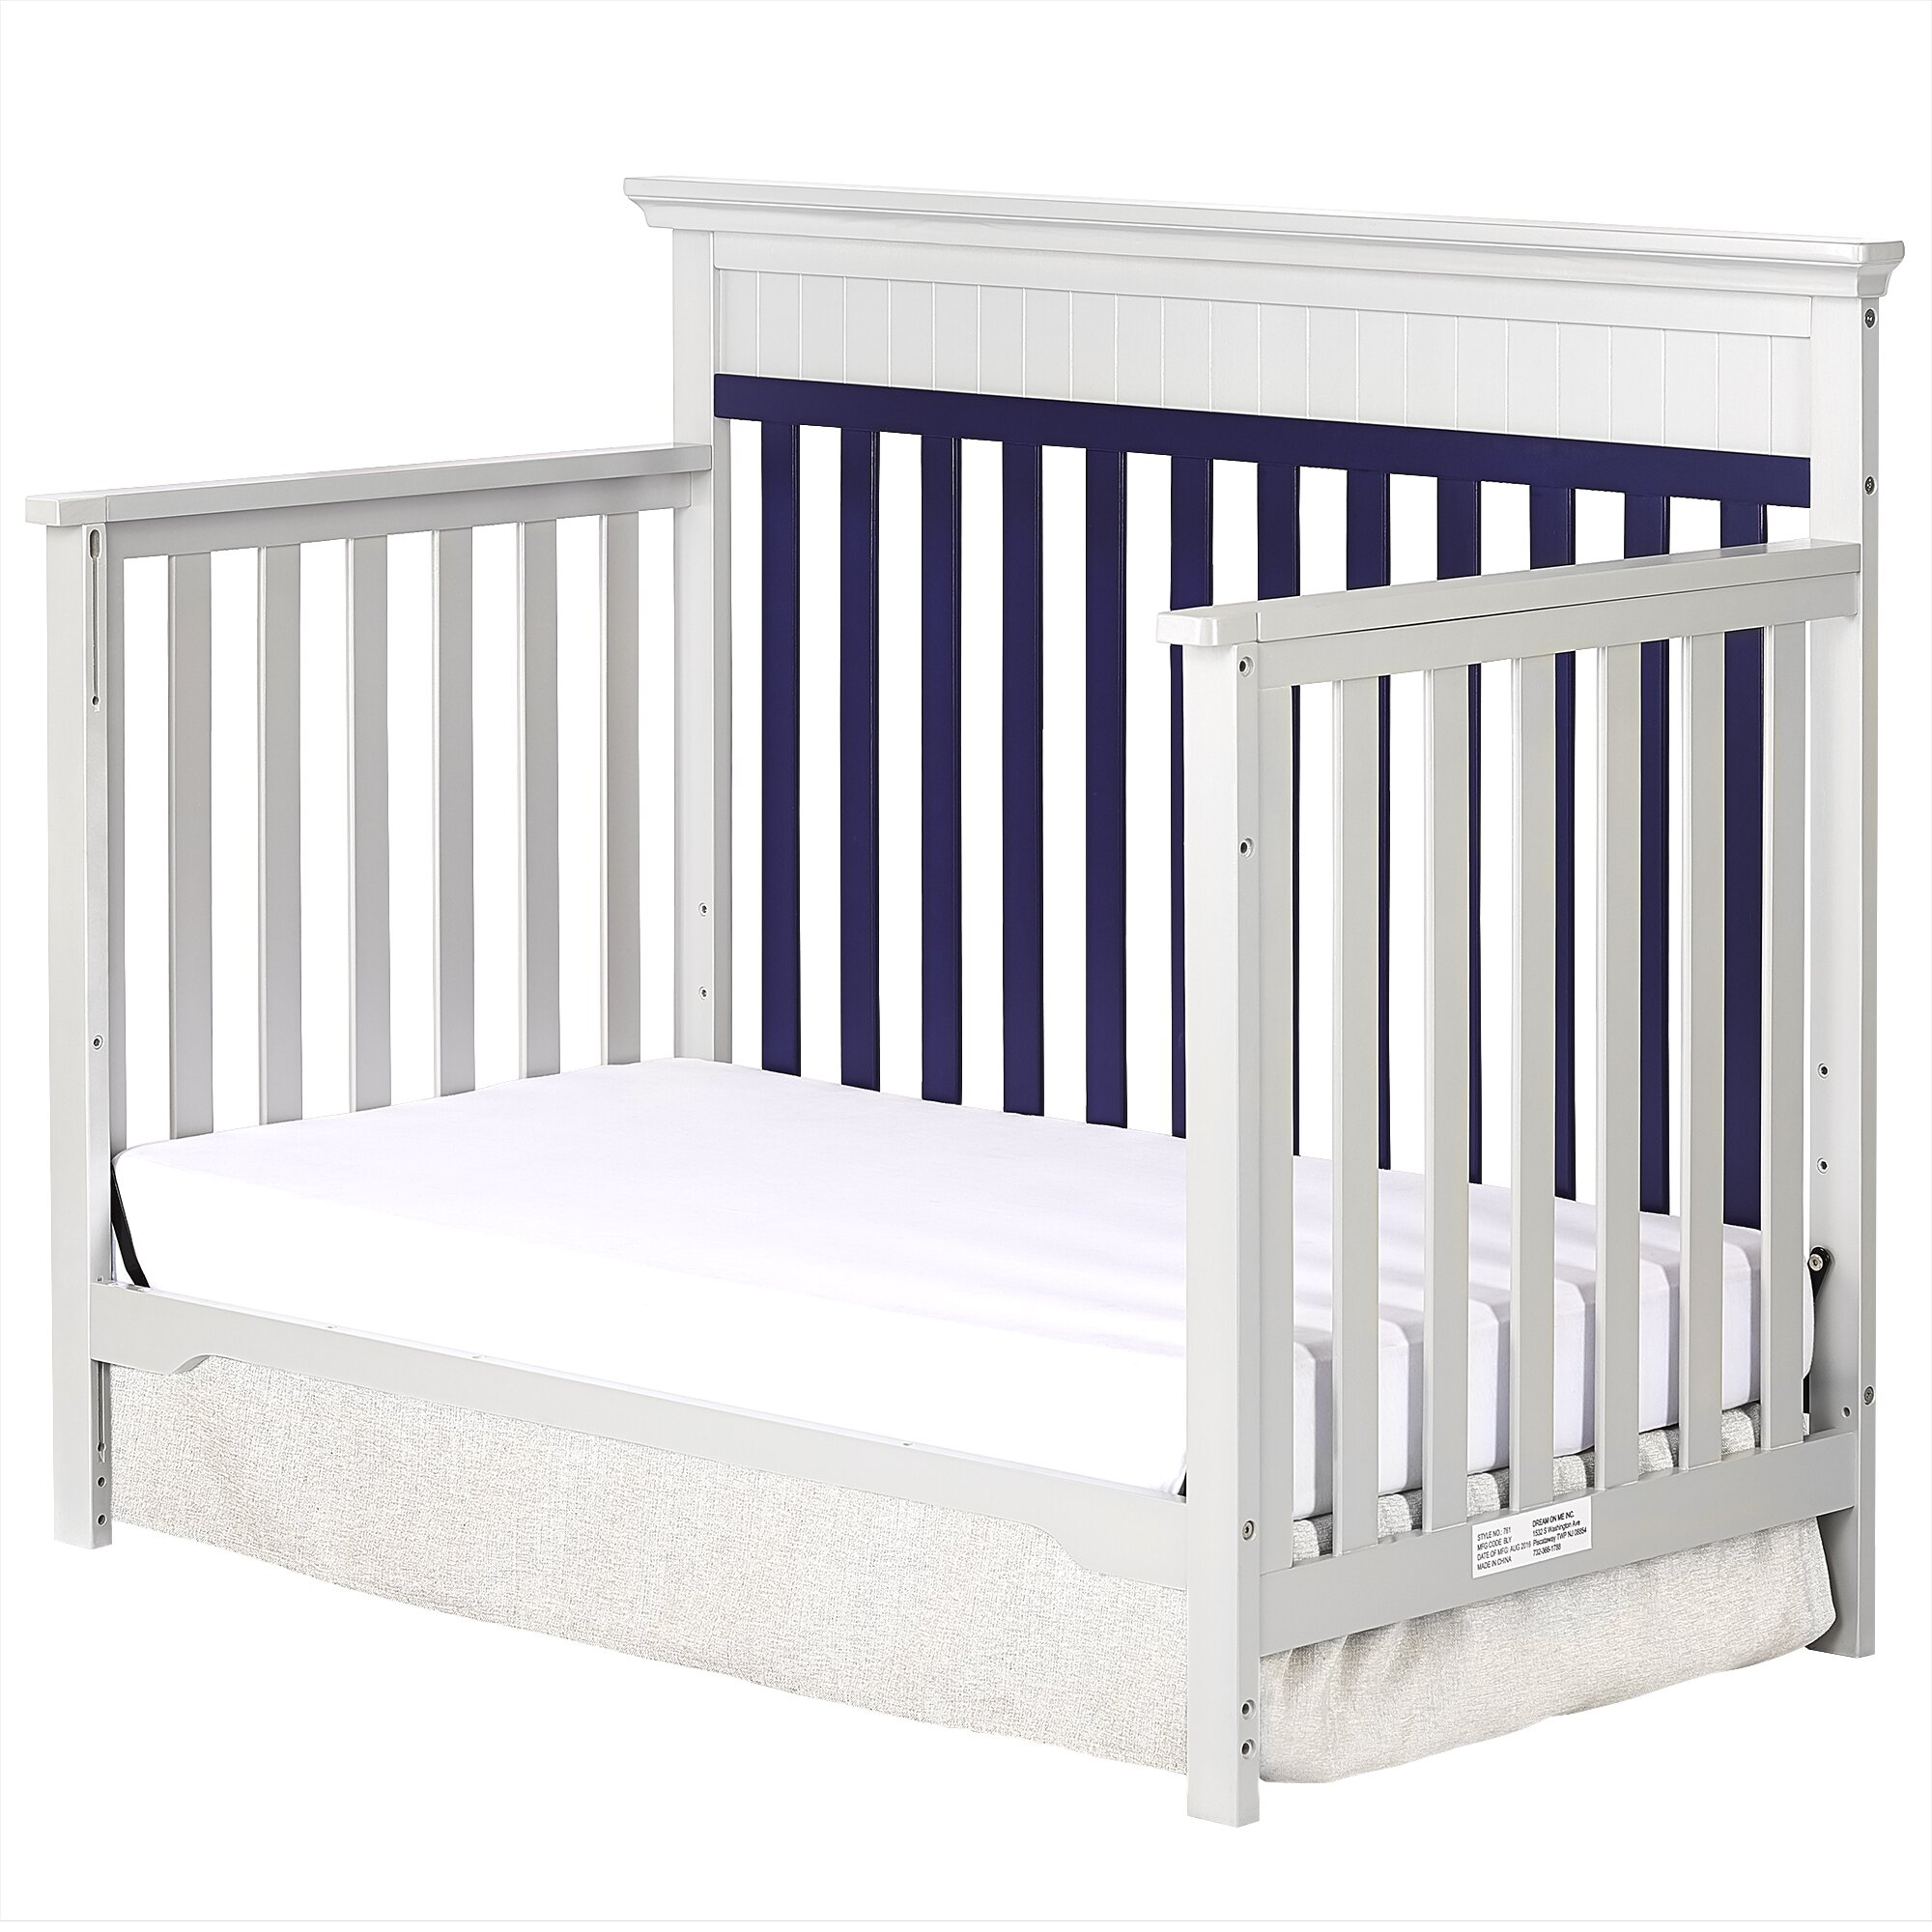 with wonderful for gray furniture bed cozy jcpenney ba girl uncategorized bedding cribs baby on design crib full of purple size fantastic sets and